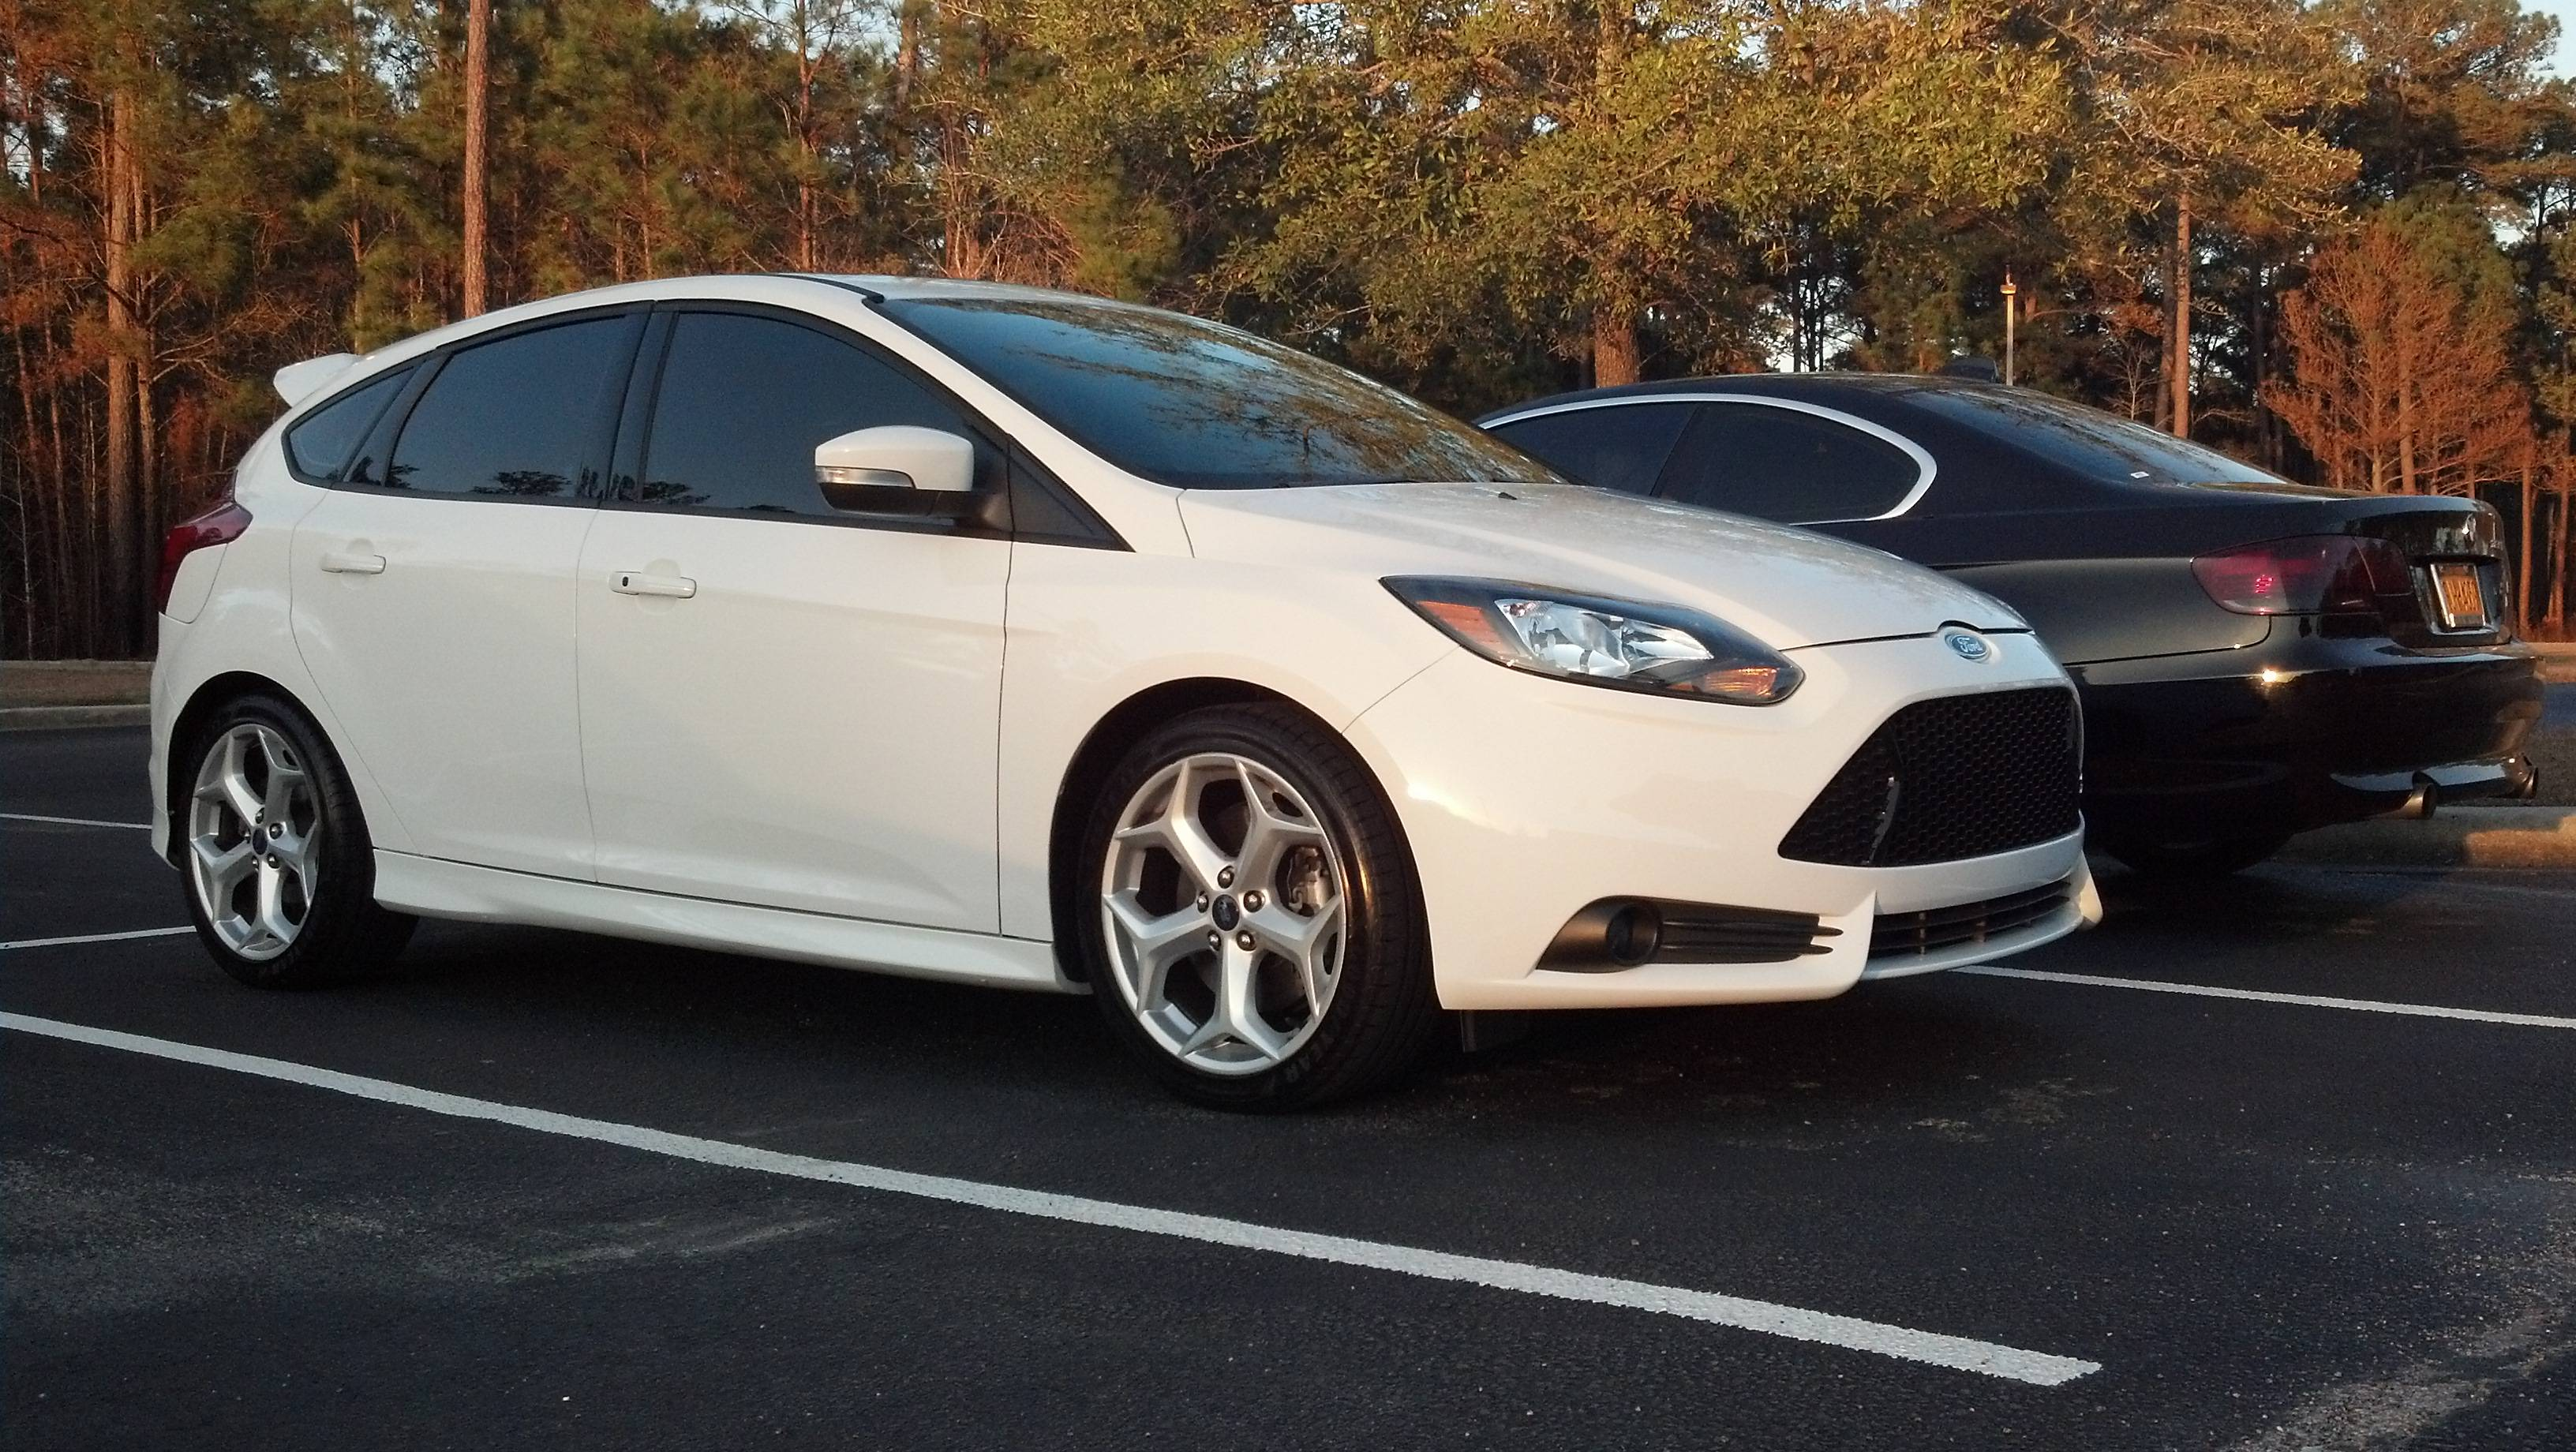 name t4wsclajpg views 6734 size 7637 kb - 2015 Ford Focus St White